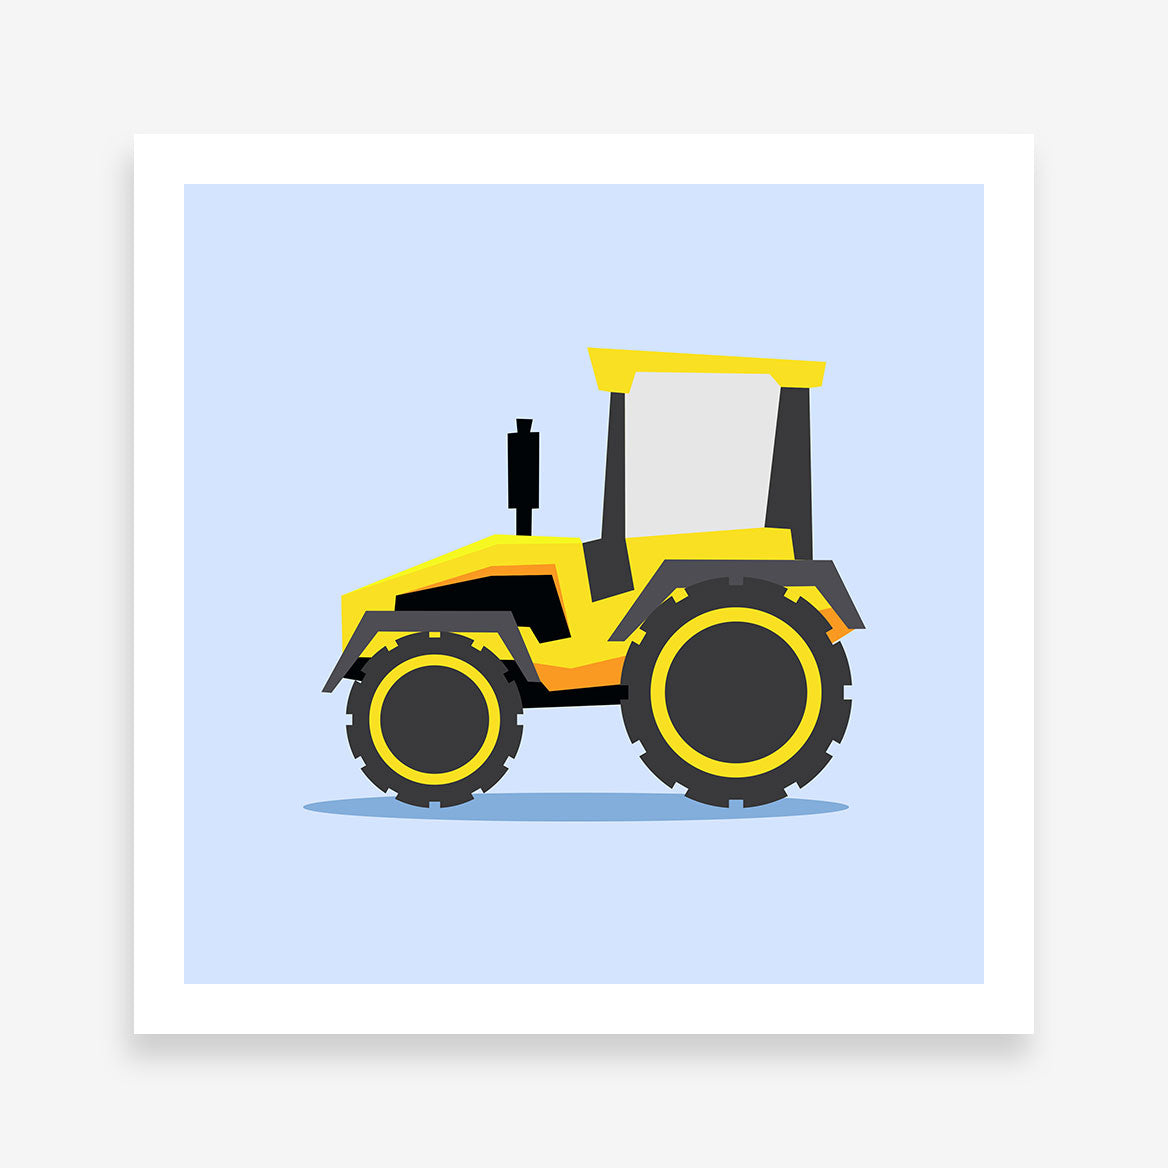 Print with a yellow tractor illustration on light blue background